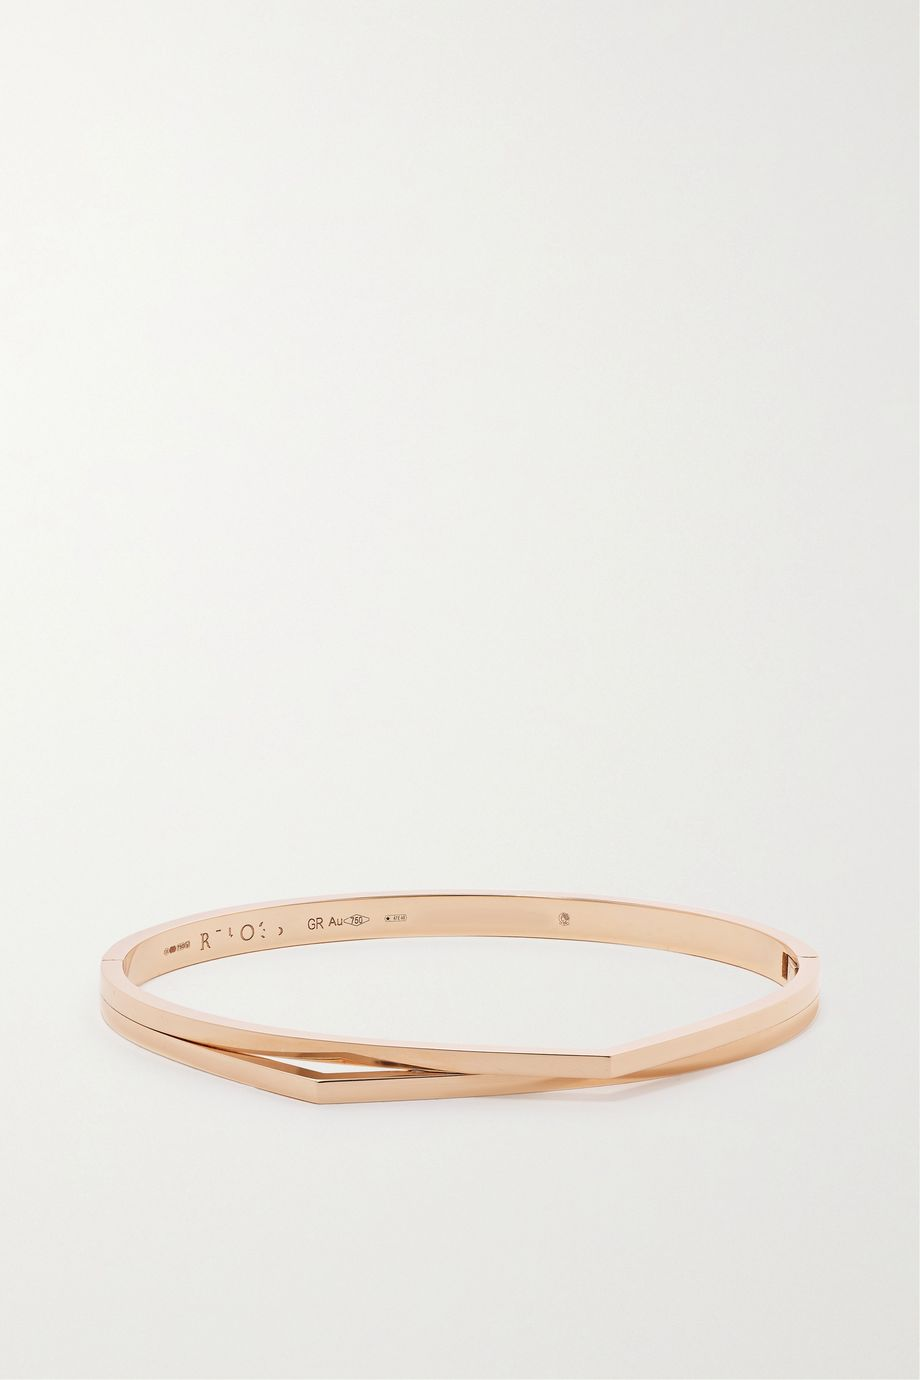 Repossi Antifer 18-karat rose gold bracelet